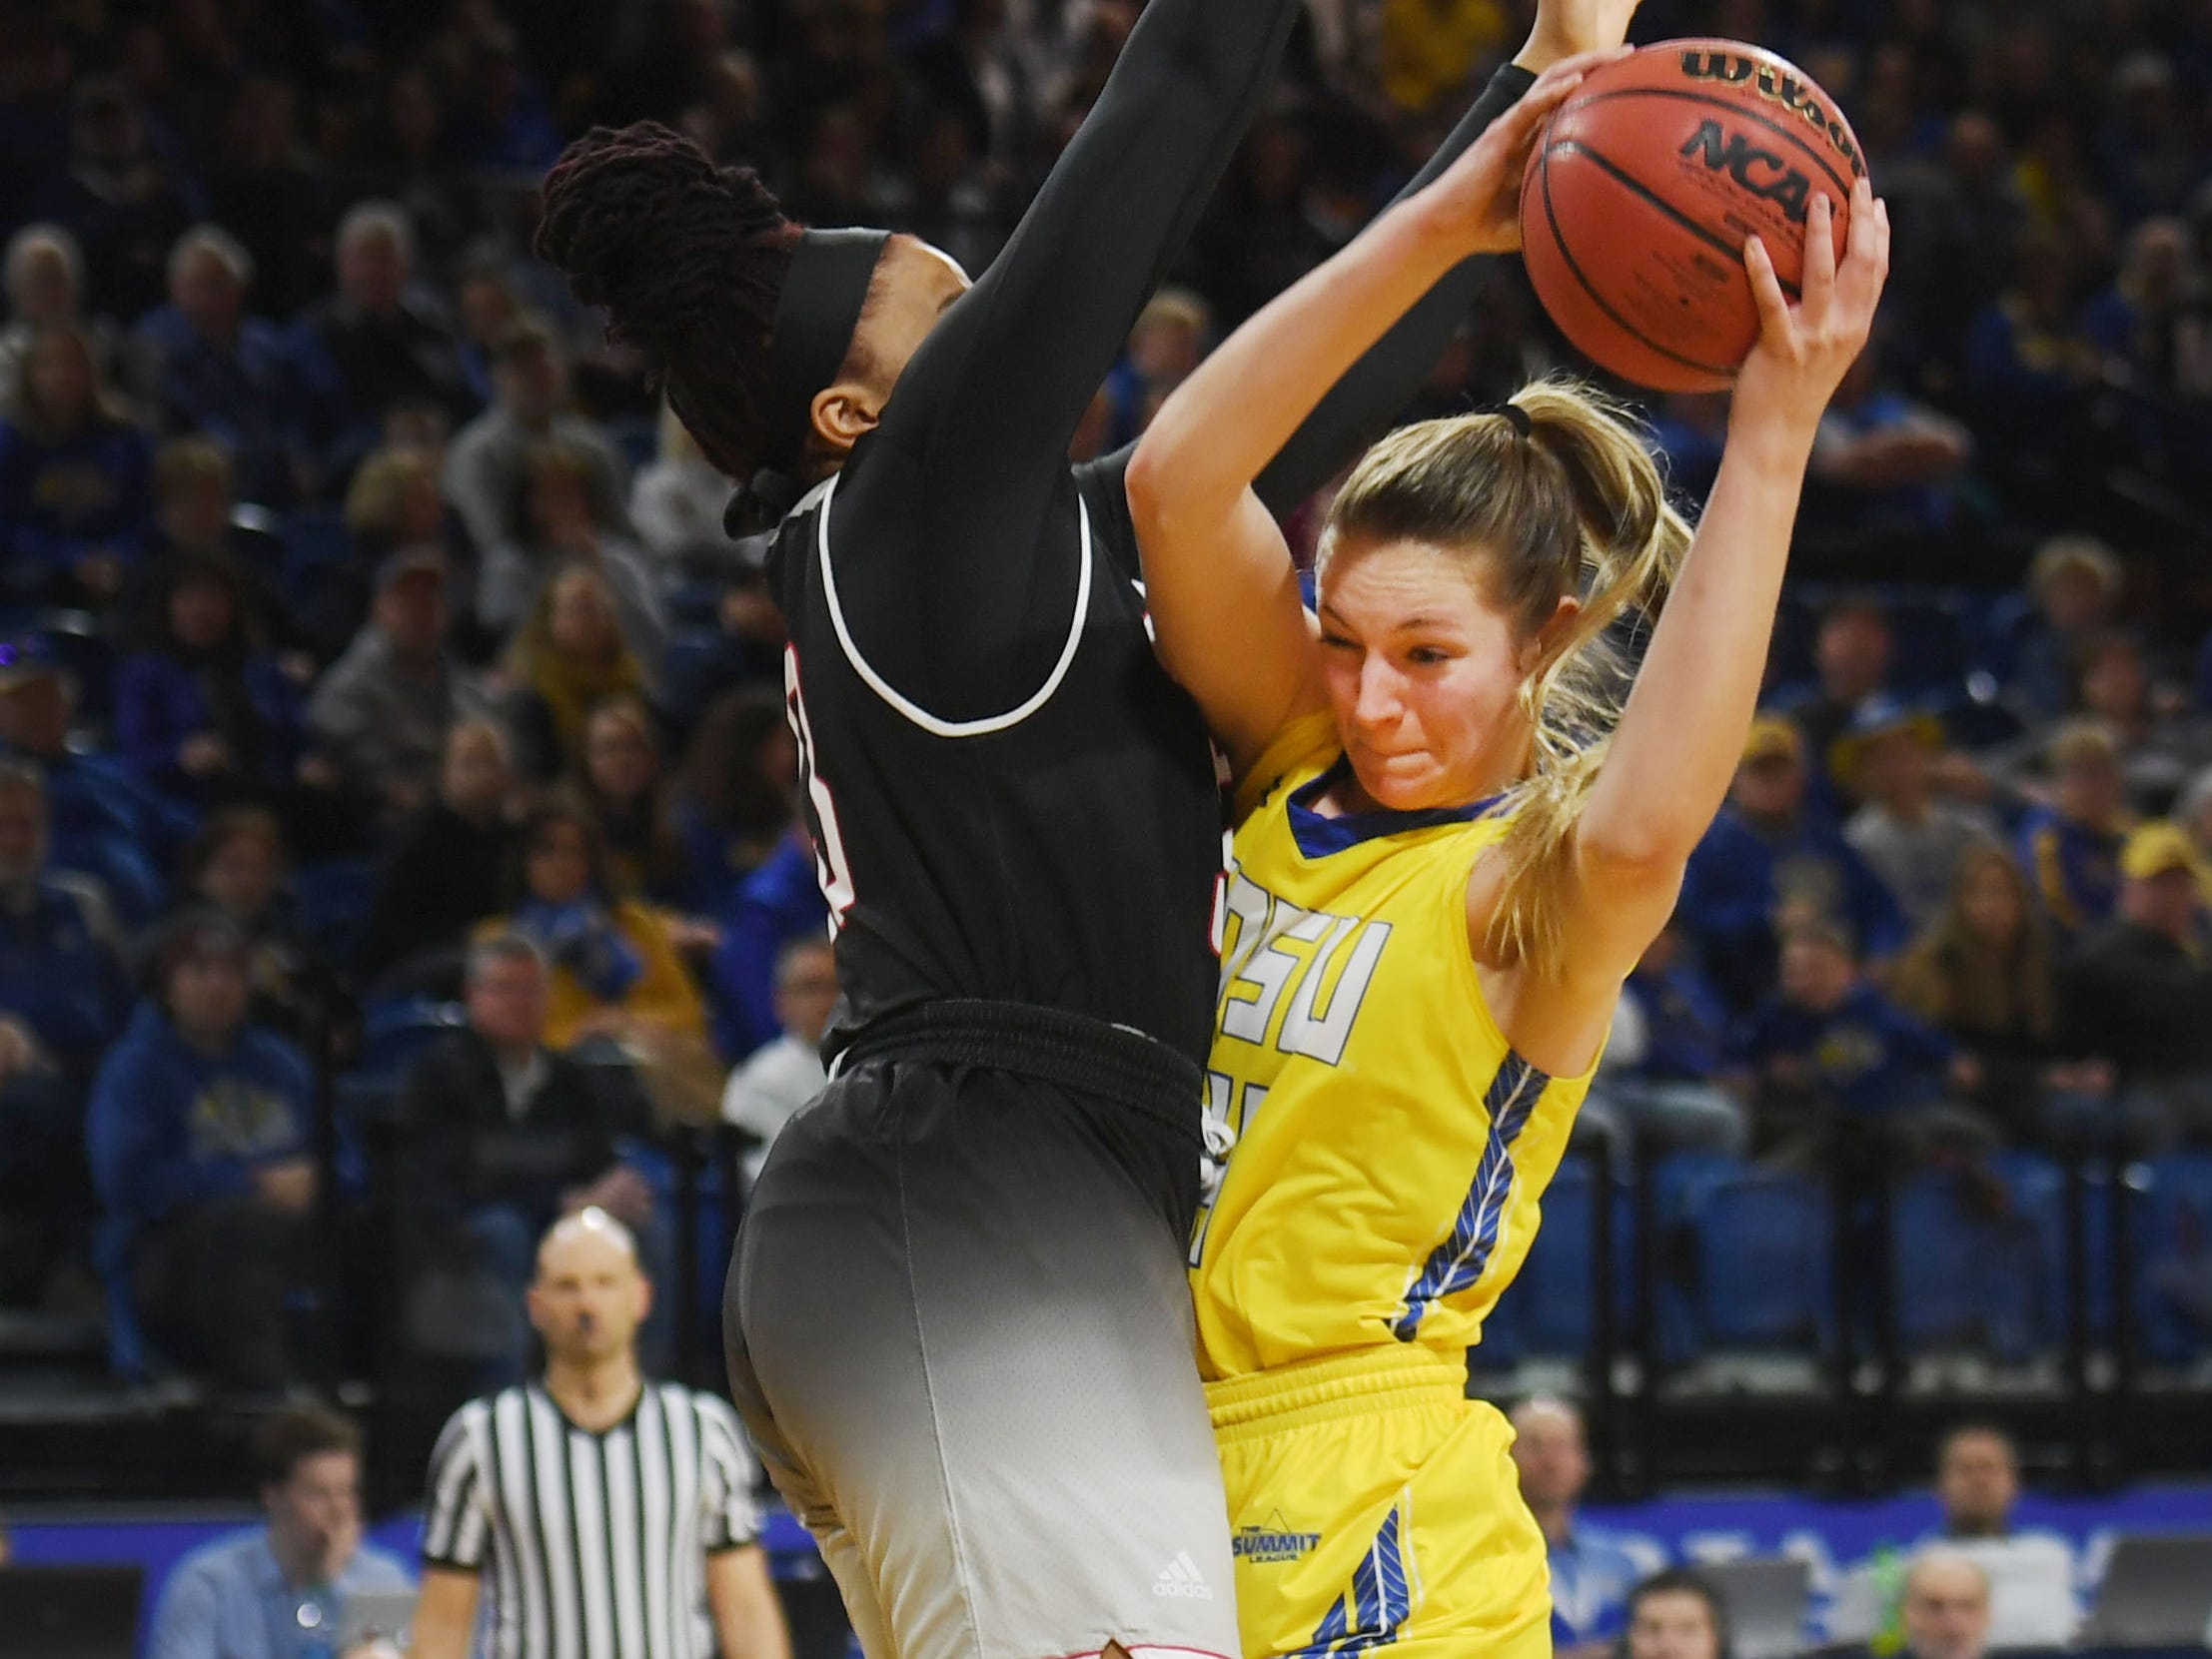 SDSU's Tagyn Larson goes against Omaha defense during the game Saturday, Jan. 26, at Frost Arena in Brookings.